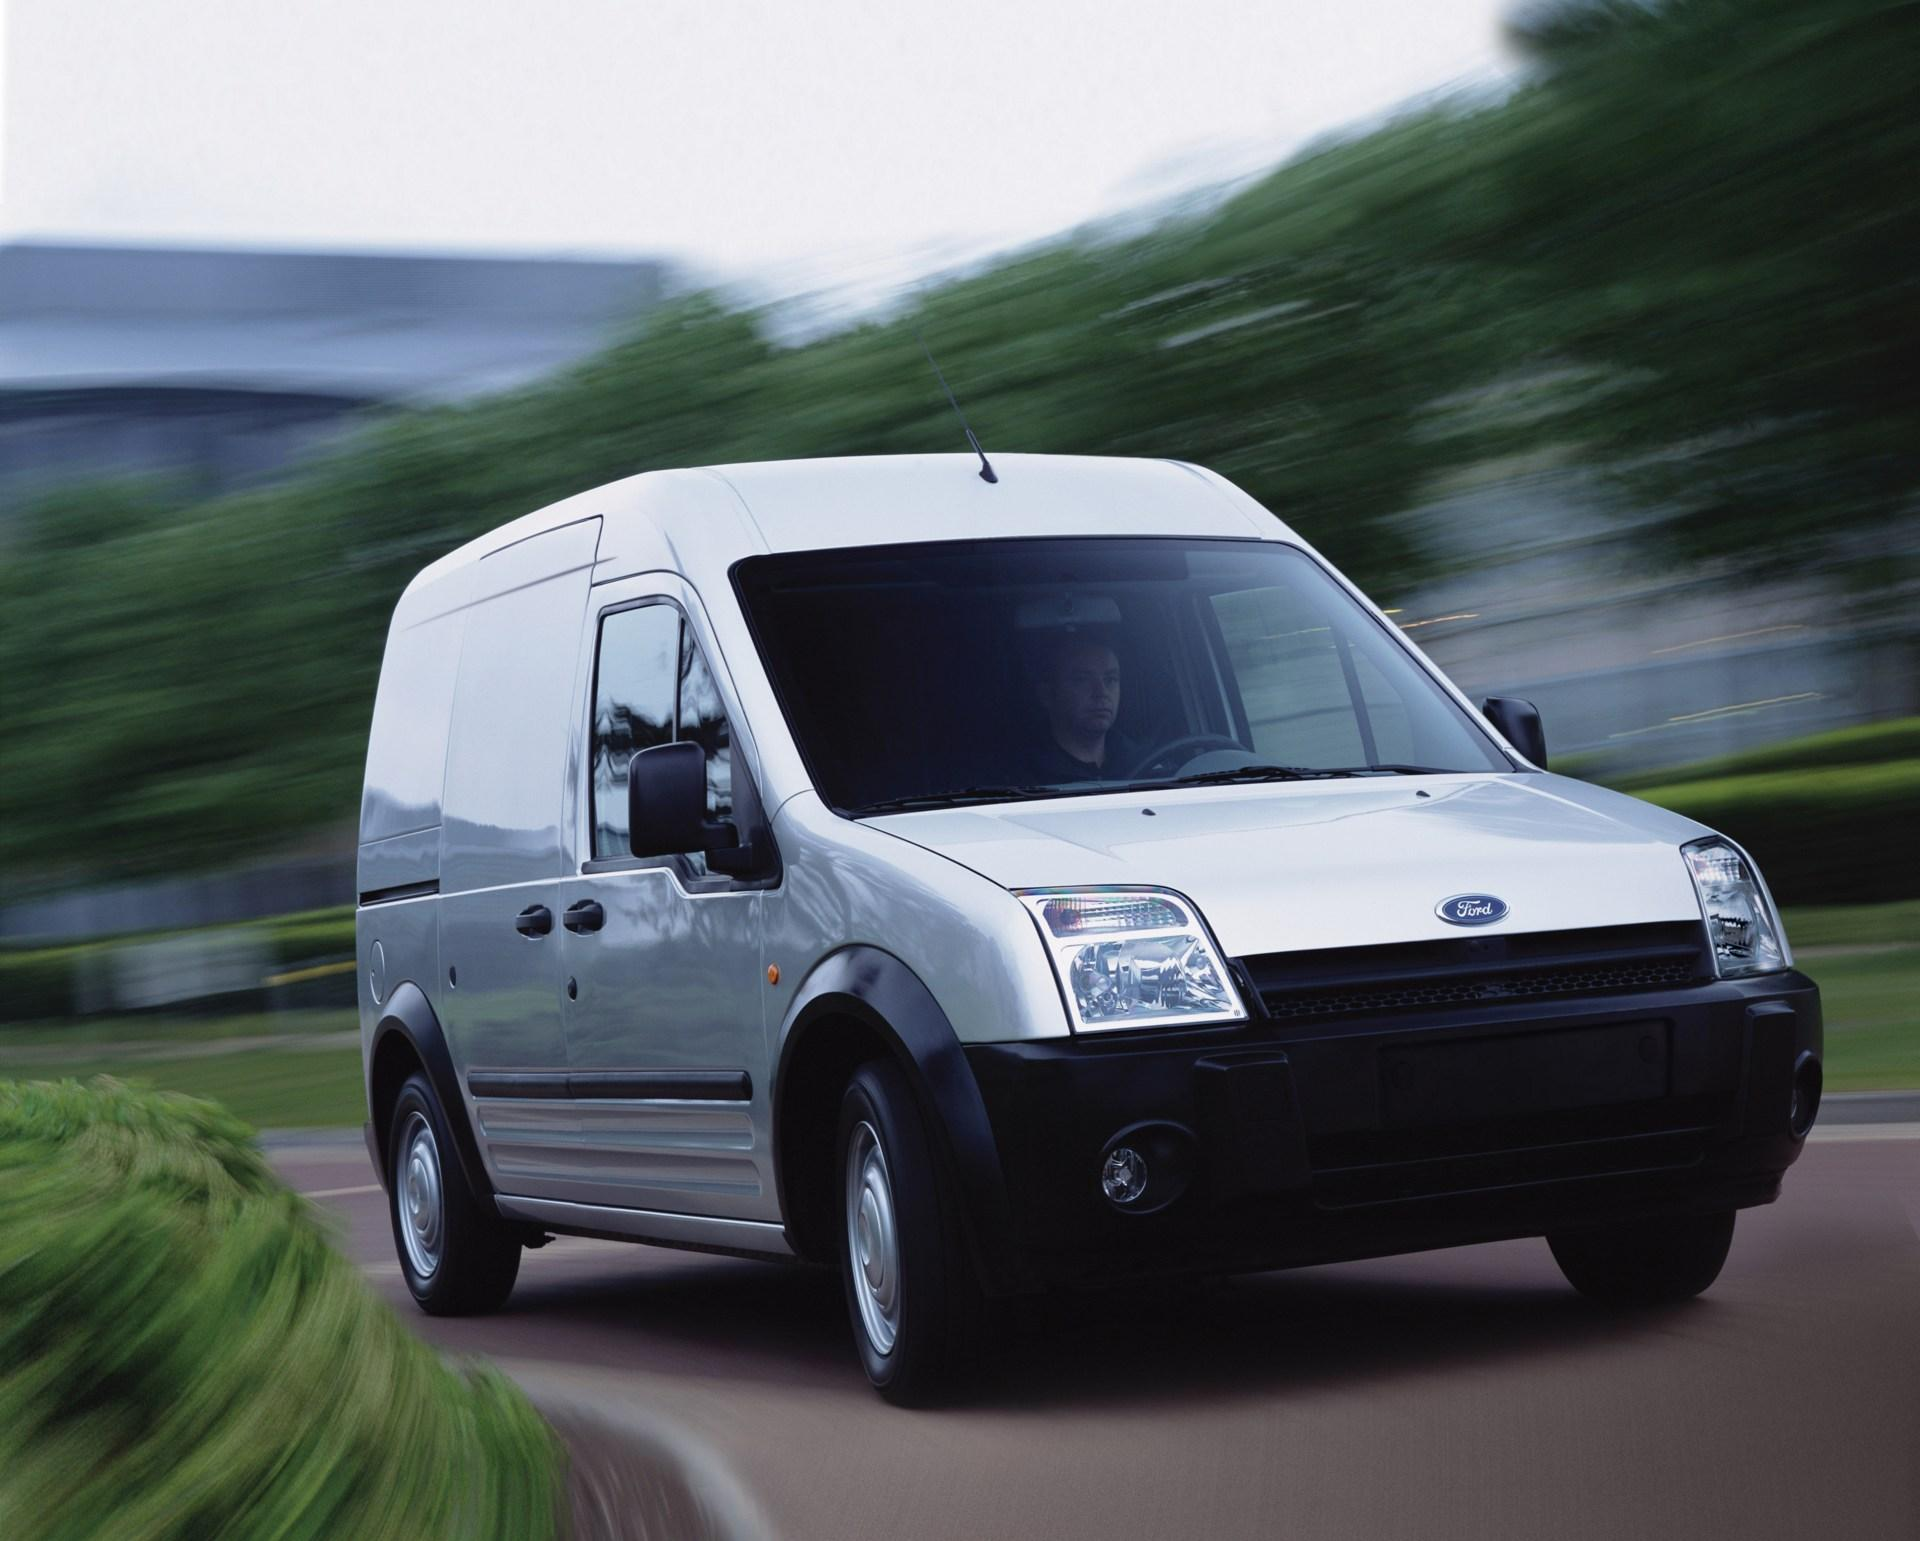 2009 Ford Transit Connect - conceptcarz.com